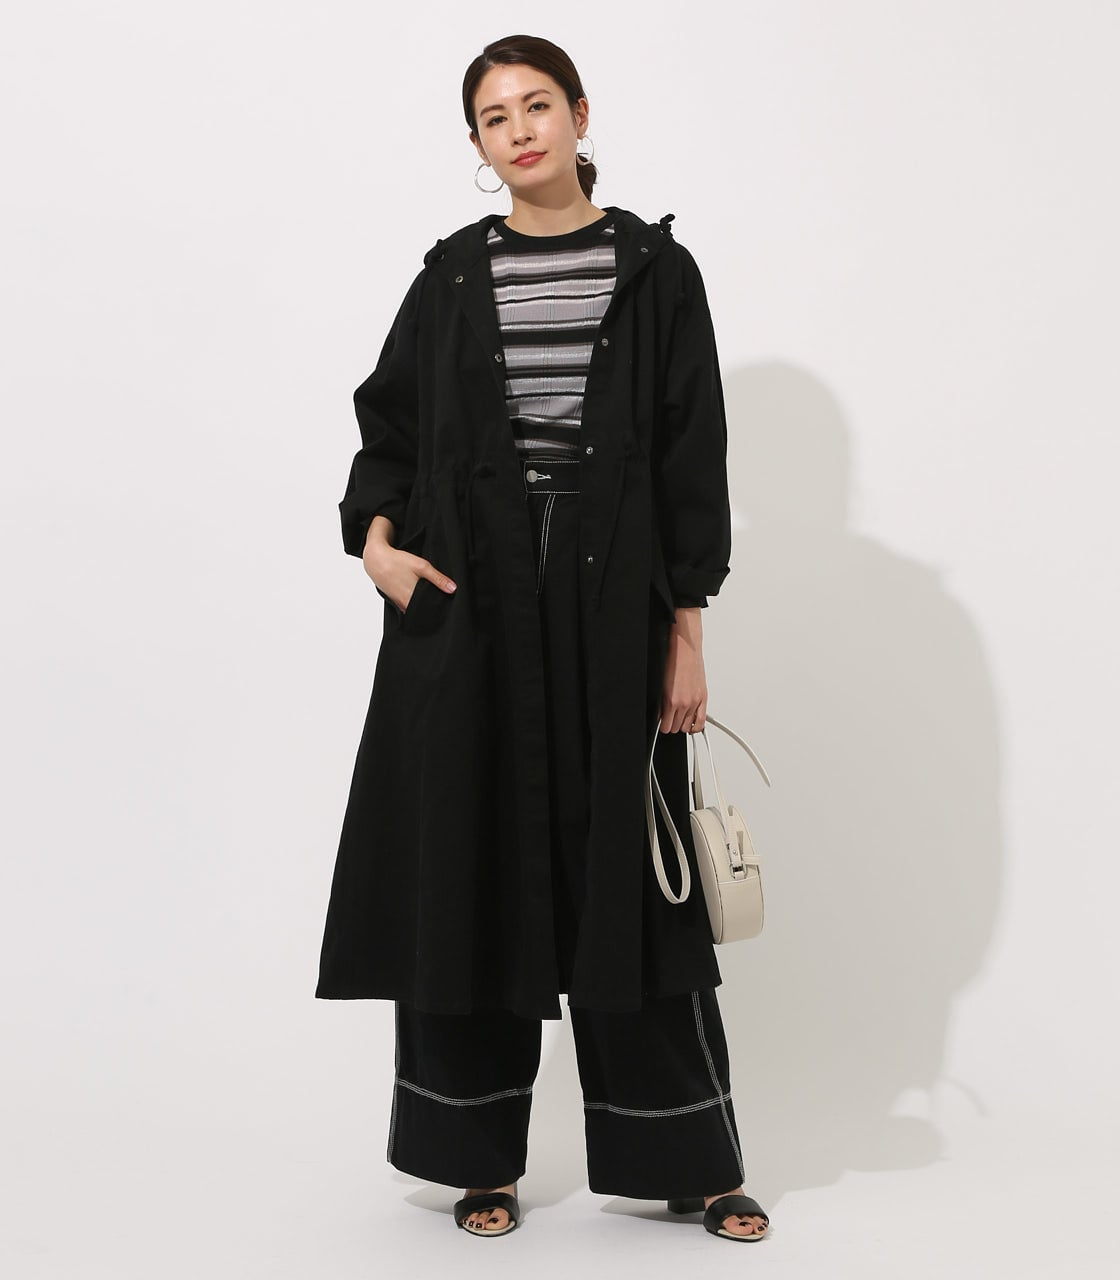 【AZUL BY MOUSSY】LOOSE MODS COAT 【MOOK49掲載 90044】 詳細画像 BLK 1